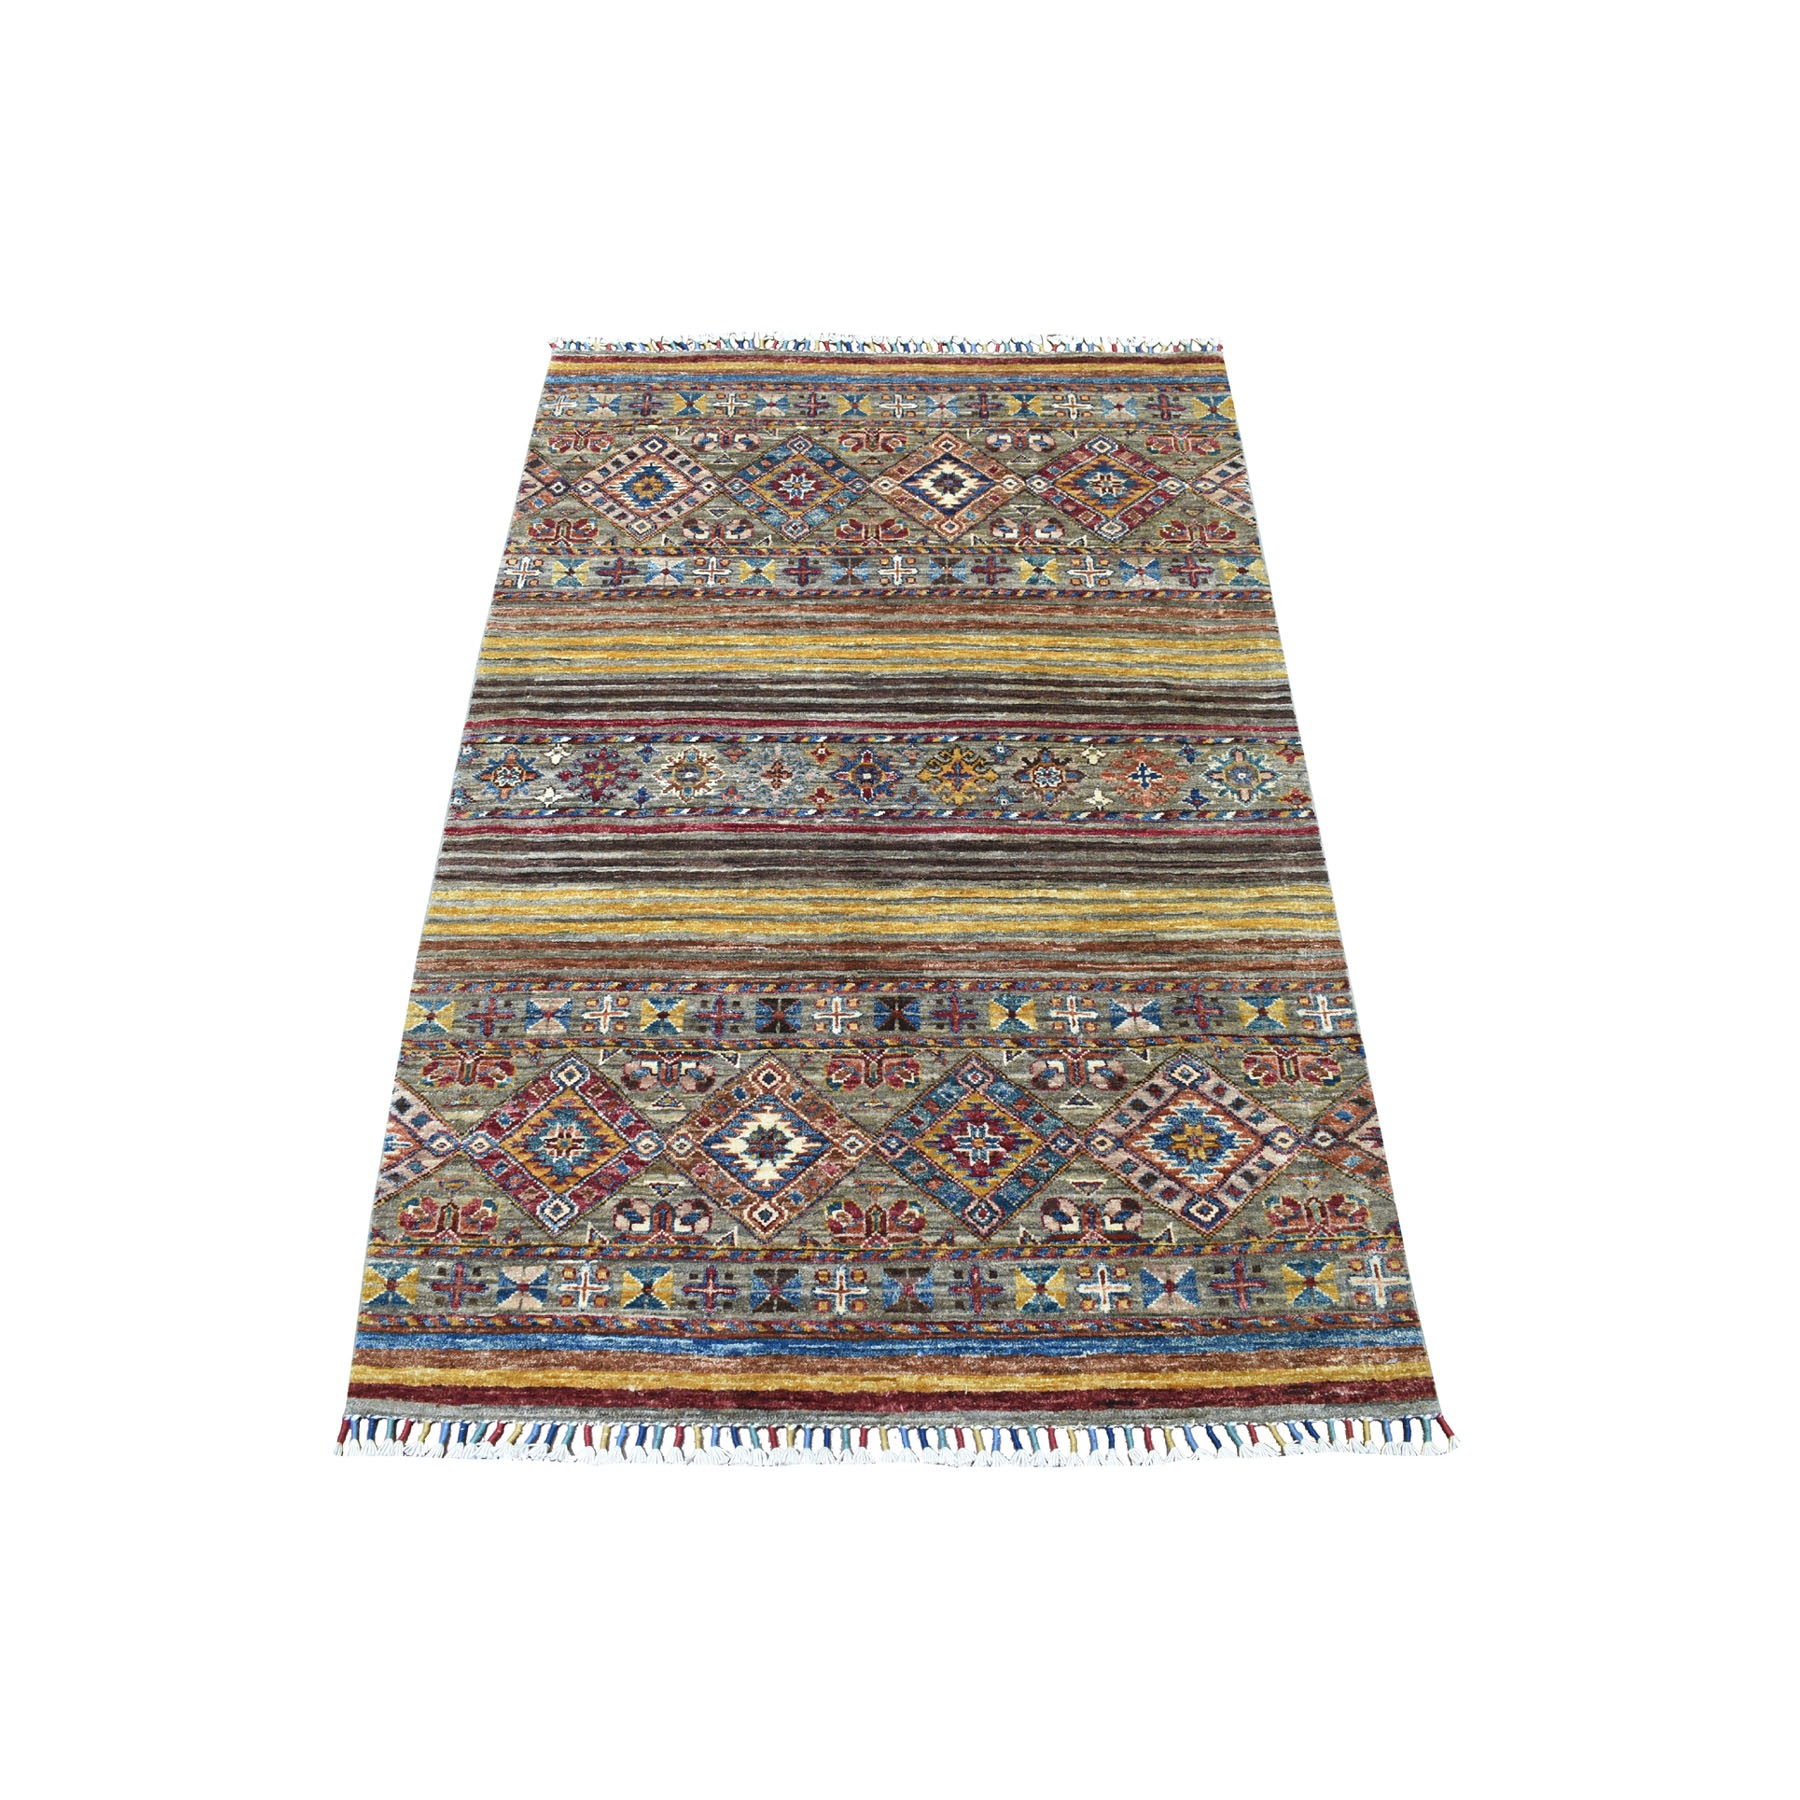 "3'3""x5' Hand Knotted Mustard Yellow With Colorful Tassles Super Kazak Khorjin Design Afghan Wool Oriental Rug"